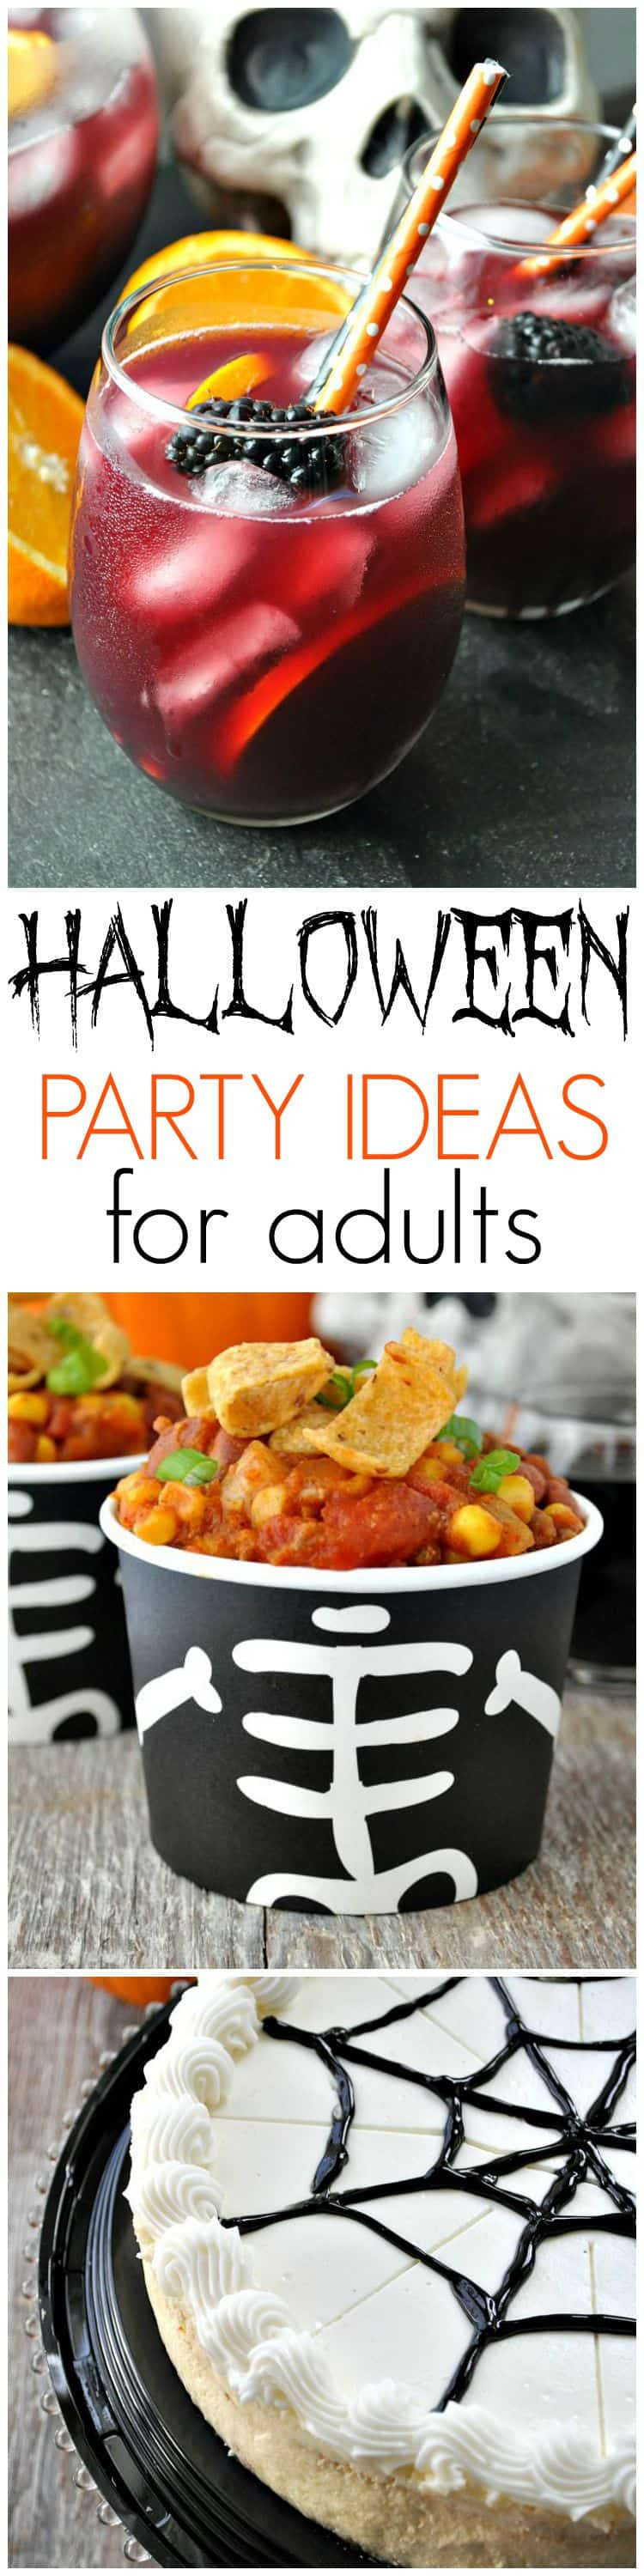 Halloween Party Decorations Ideas For Adults  Slow Cooker Pumpkin Chili Halloween Party Ideas for